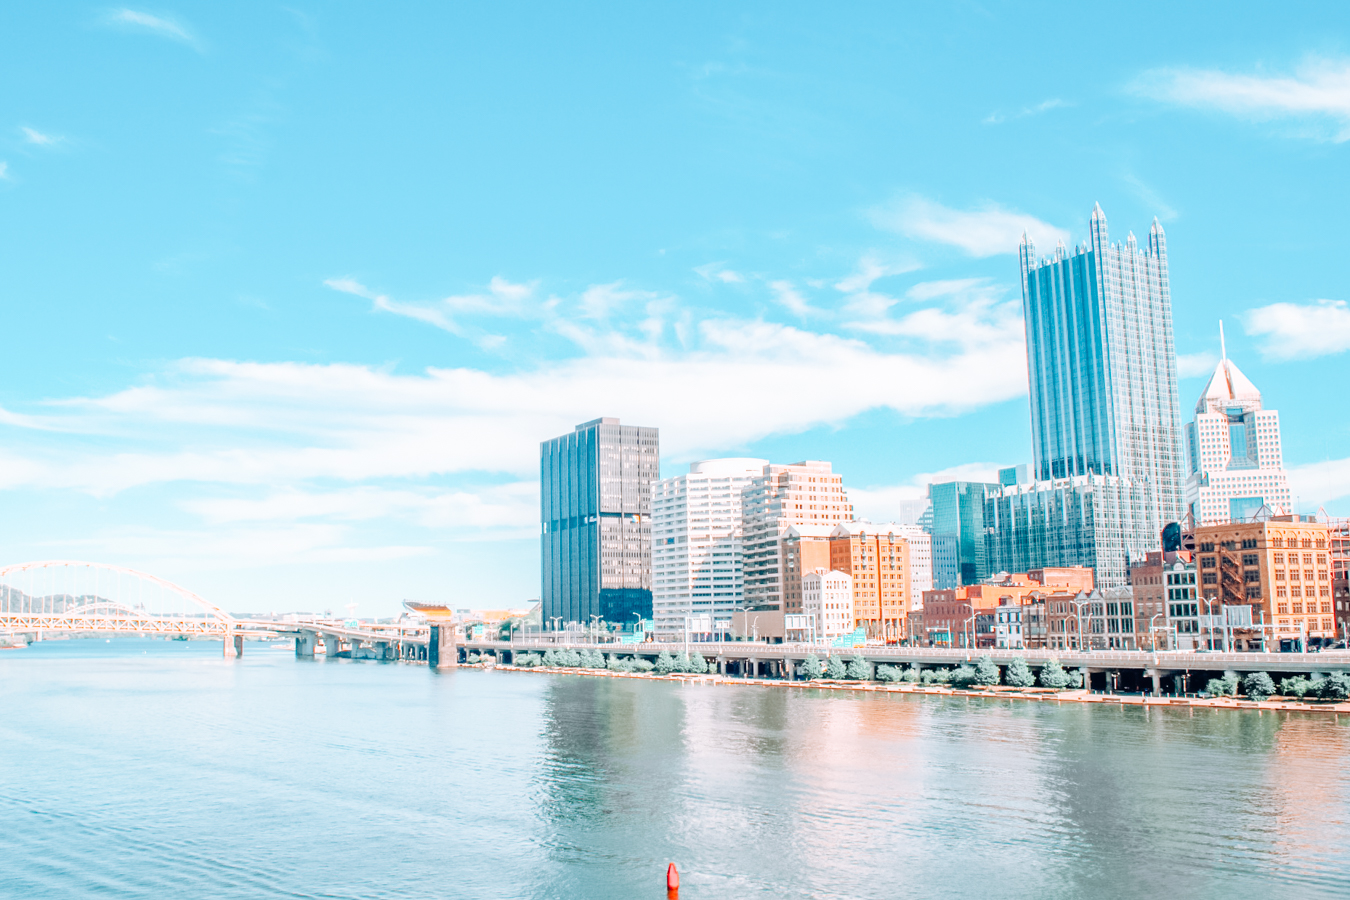 View of buildings and water in Pittsburgh